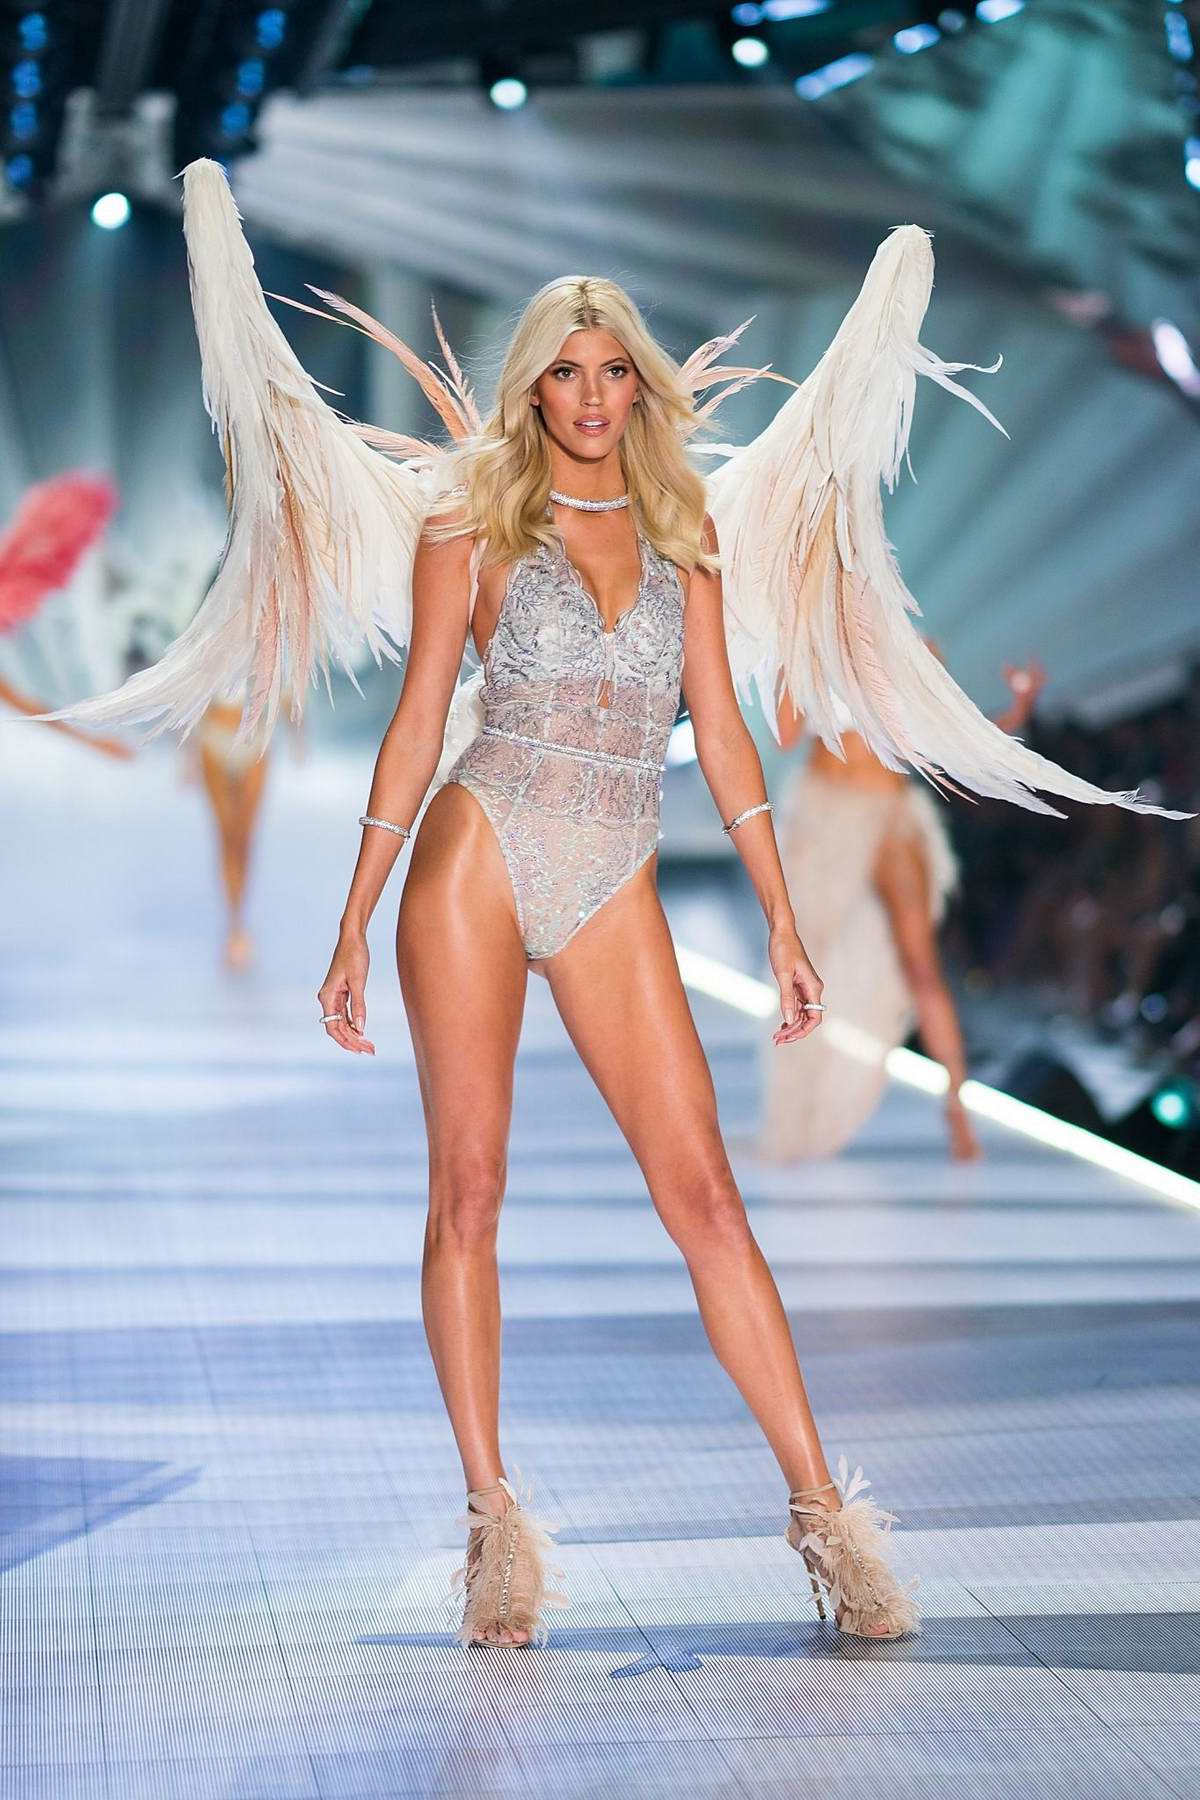 Devon Windsor walks the runway during the 2018 Victoria's Secret Fashion Show at Pier 94 in New York City